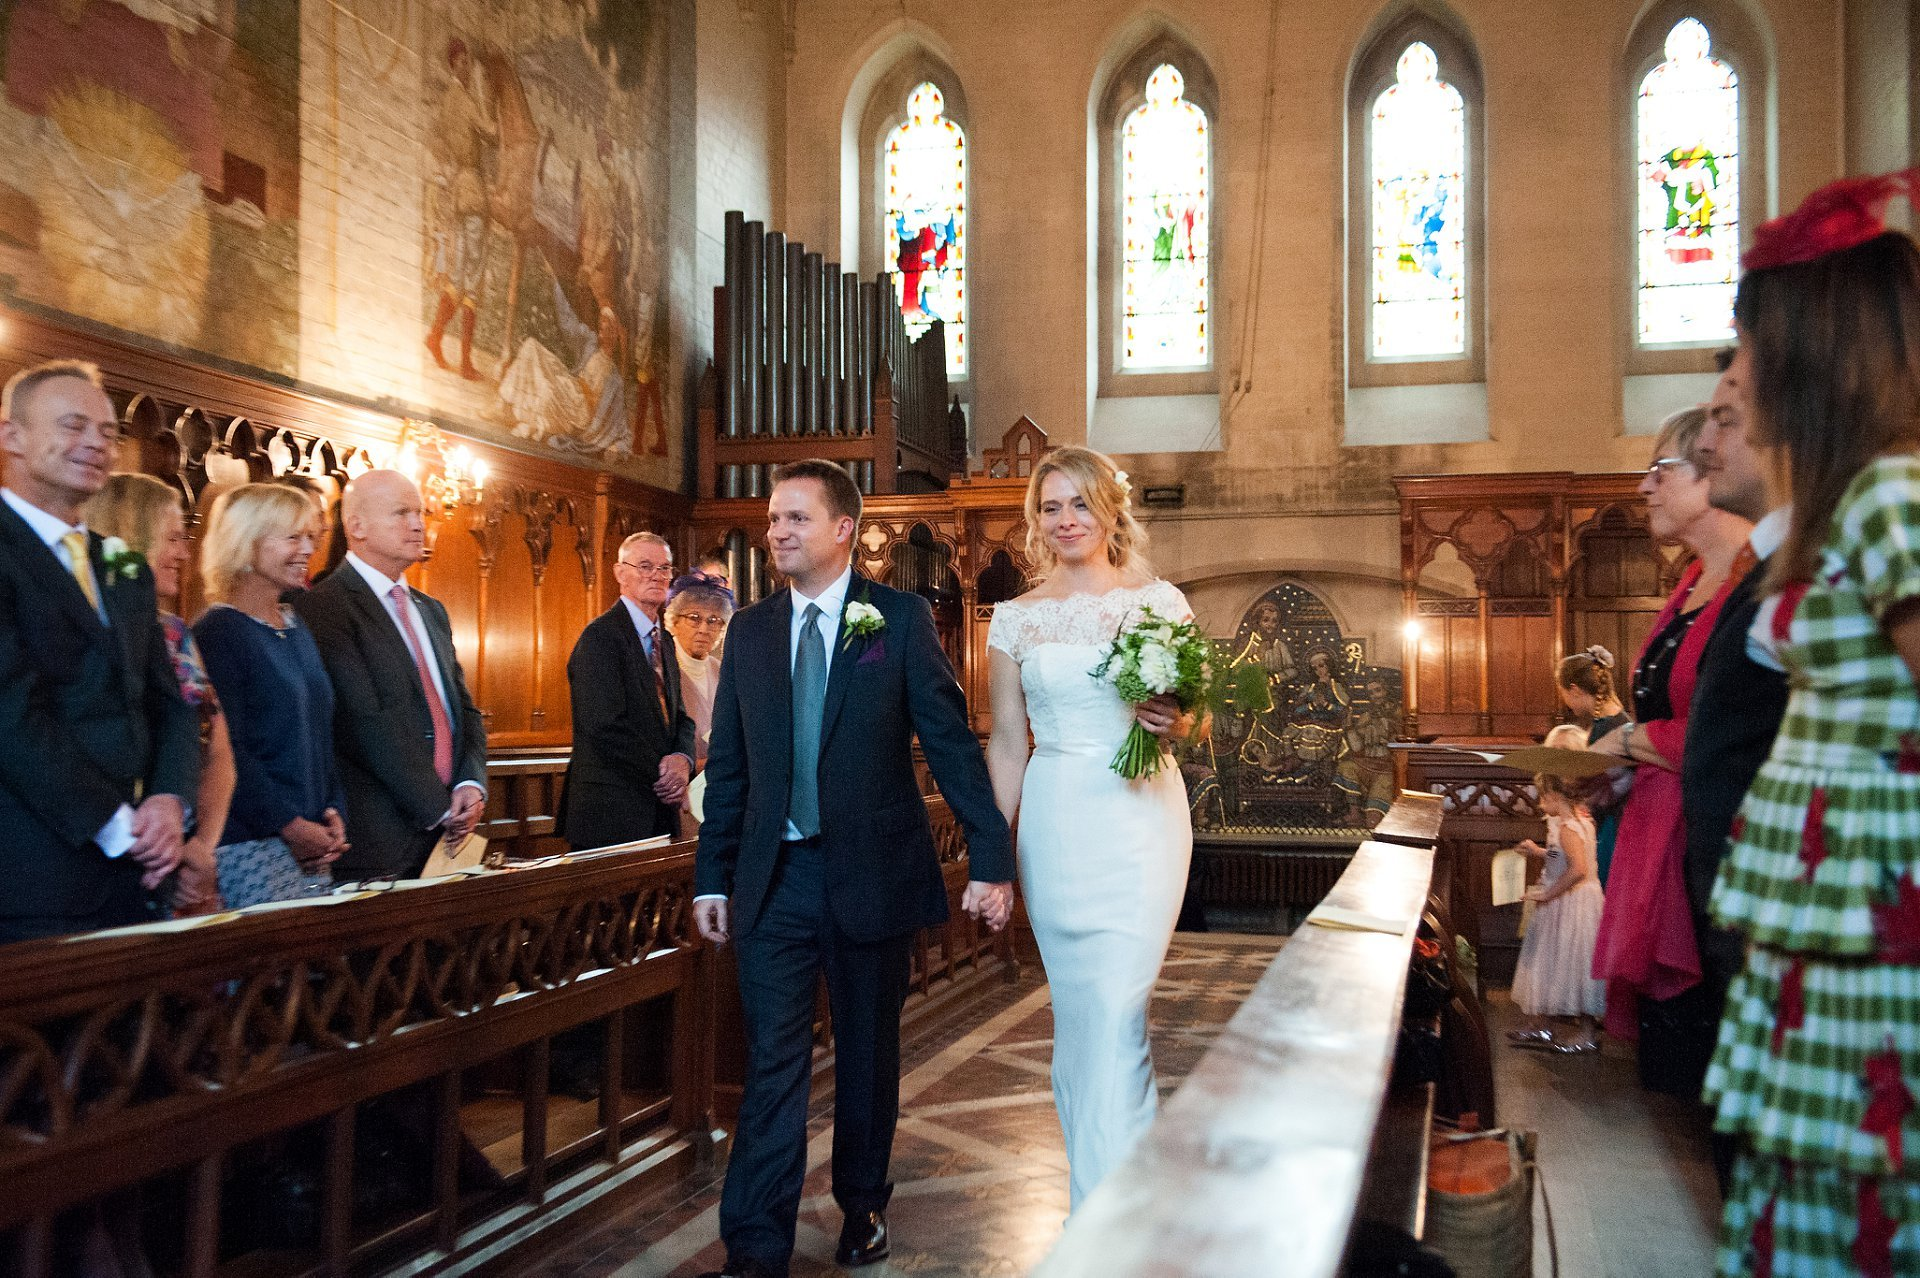 Fulham Palace Wedding Photography -bride and groom enter the tait chapel at fulham palace to have their civil marriage blessed by the vicar from local church All Saint's Putney